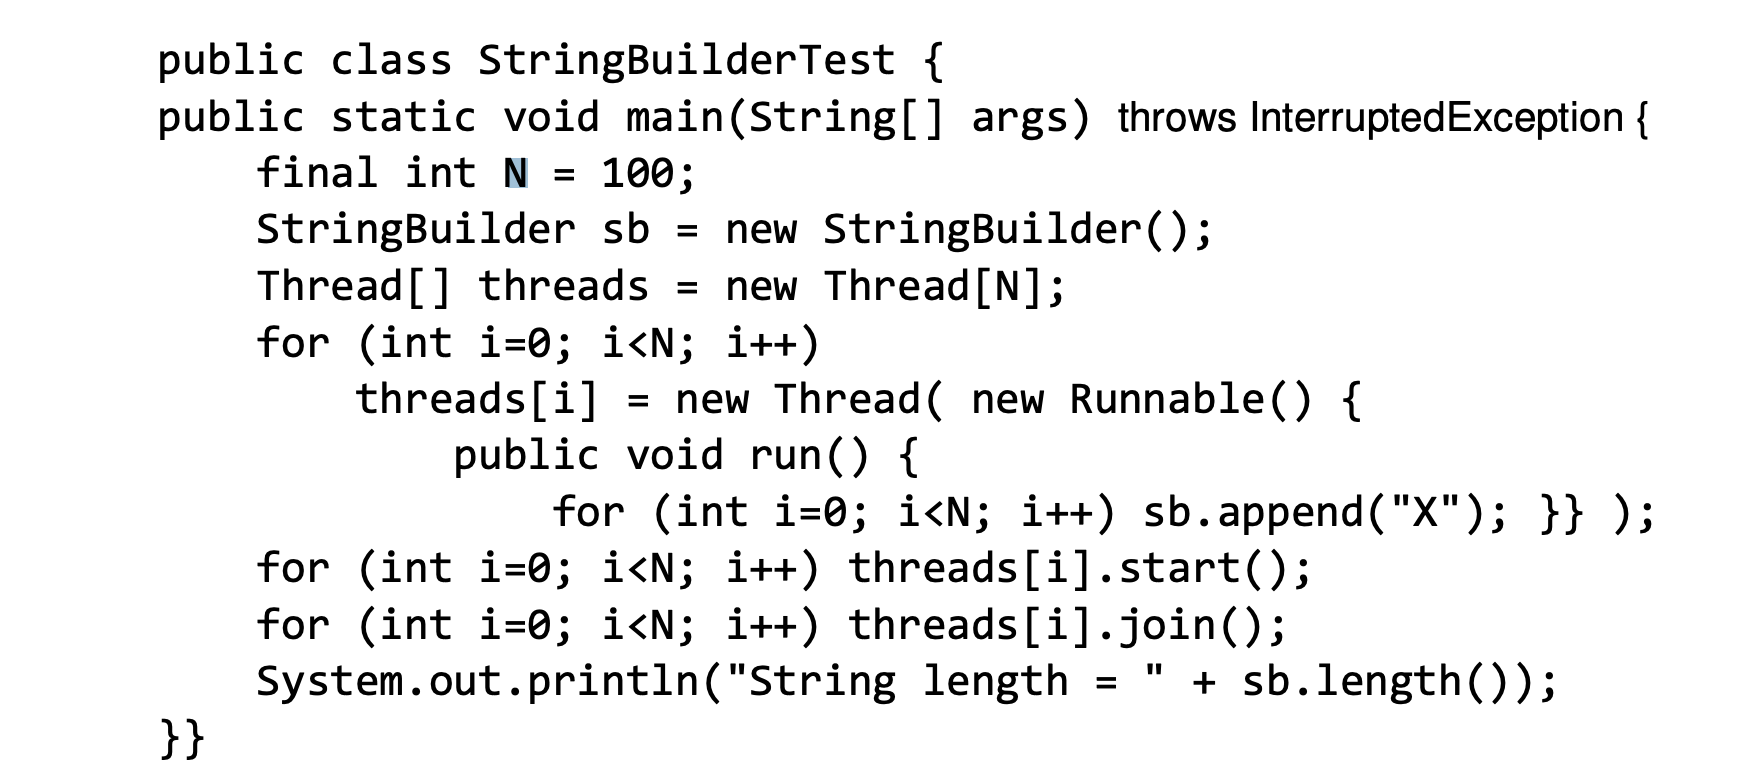 "public class StringBuilderTest { public static void main(String[] args) throws InterruptedException 100 final int N StringBuilder sb Thread[] threads = for (int i-0; i<N; i++) threads[i] new StringBuilder(); new Thread [N]; = new Thread new Runnable() { public void run() { for (int i-0; i<N; i++) sb.append ( ""X""); }} ); for (int i-0; i<N; i++) threads [ i] . start(); for (int i-0; i<N; i++) threads [i].join(); System.out.println(""String length }} sb.length()); ="